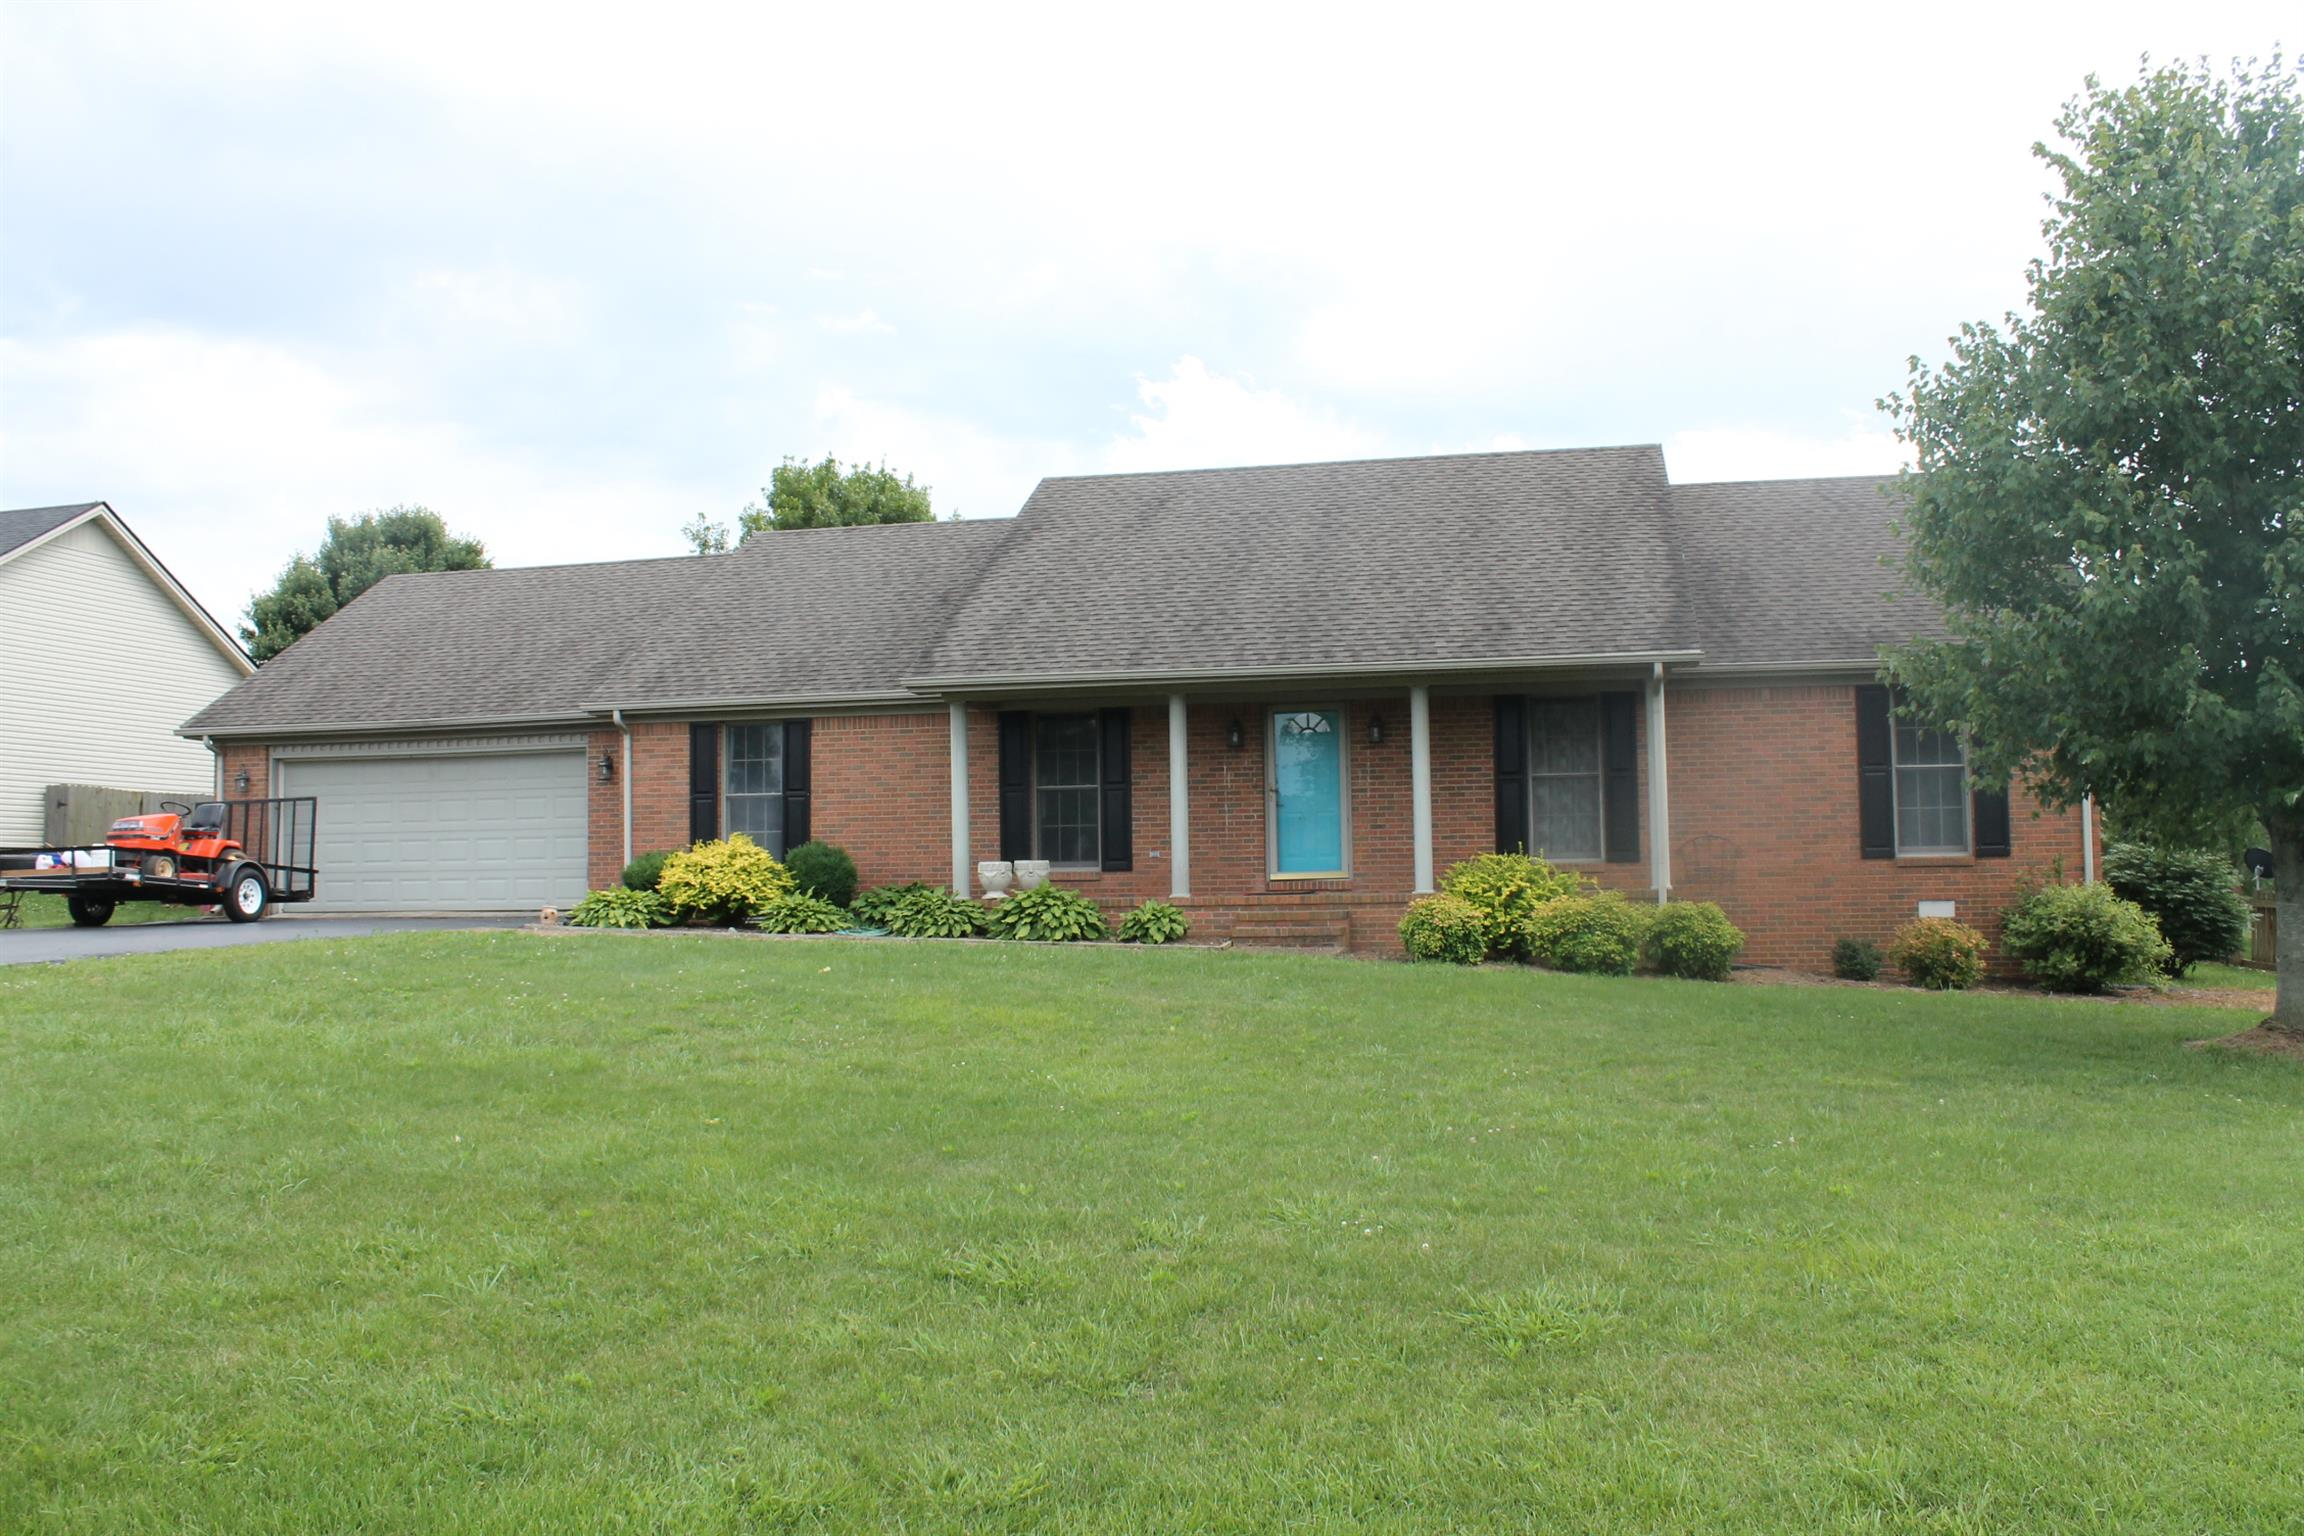 1417 Shallow Lake Circle, Hopkinsville, KY 42240 - Hopkinsville, KY real estate listing